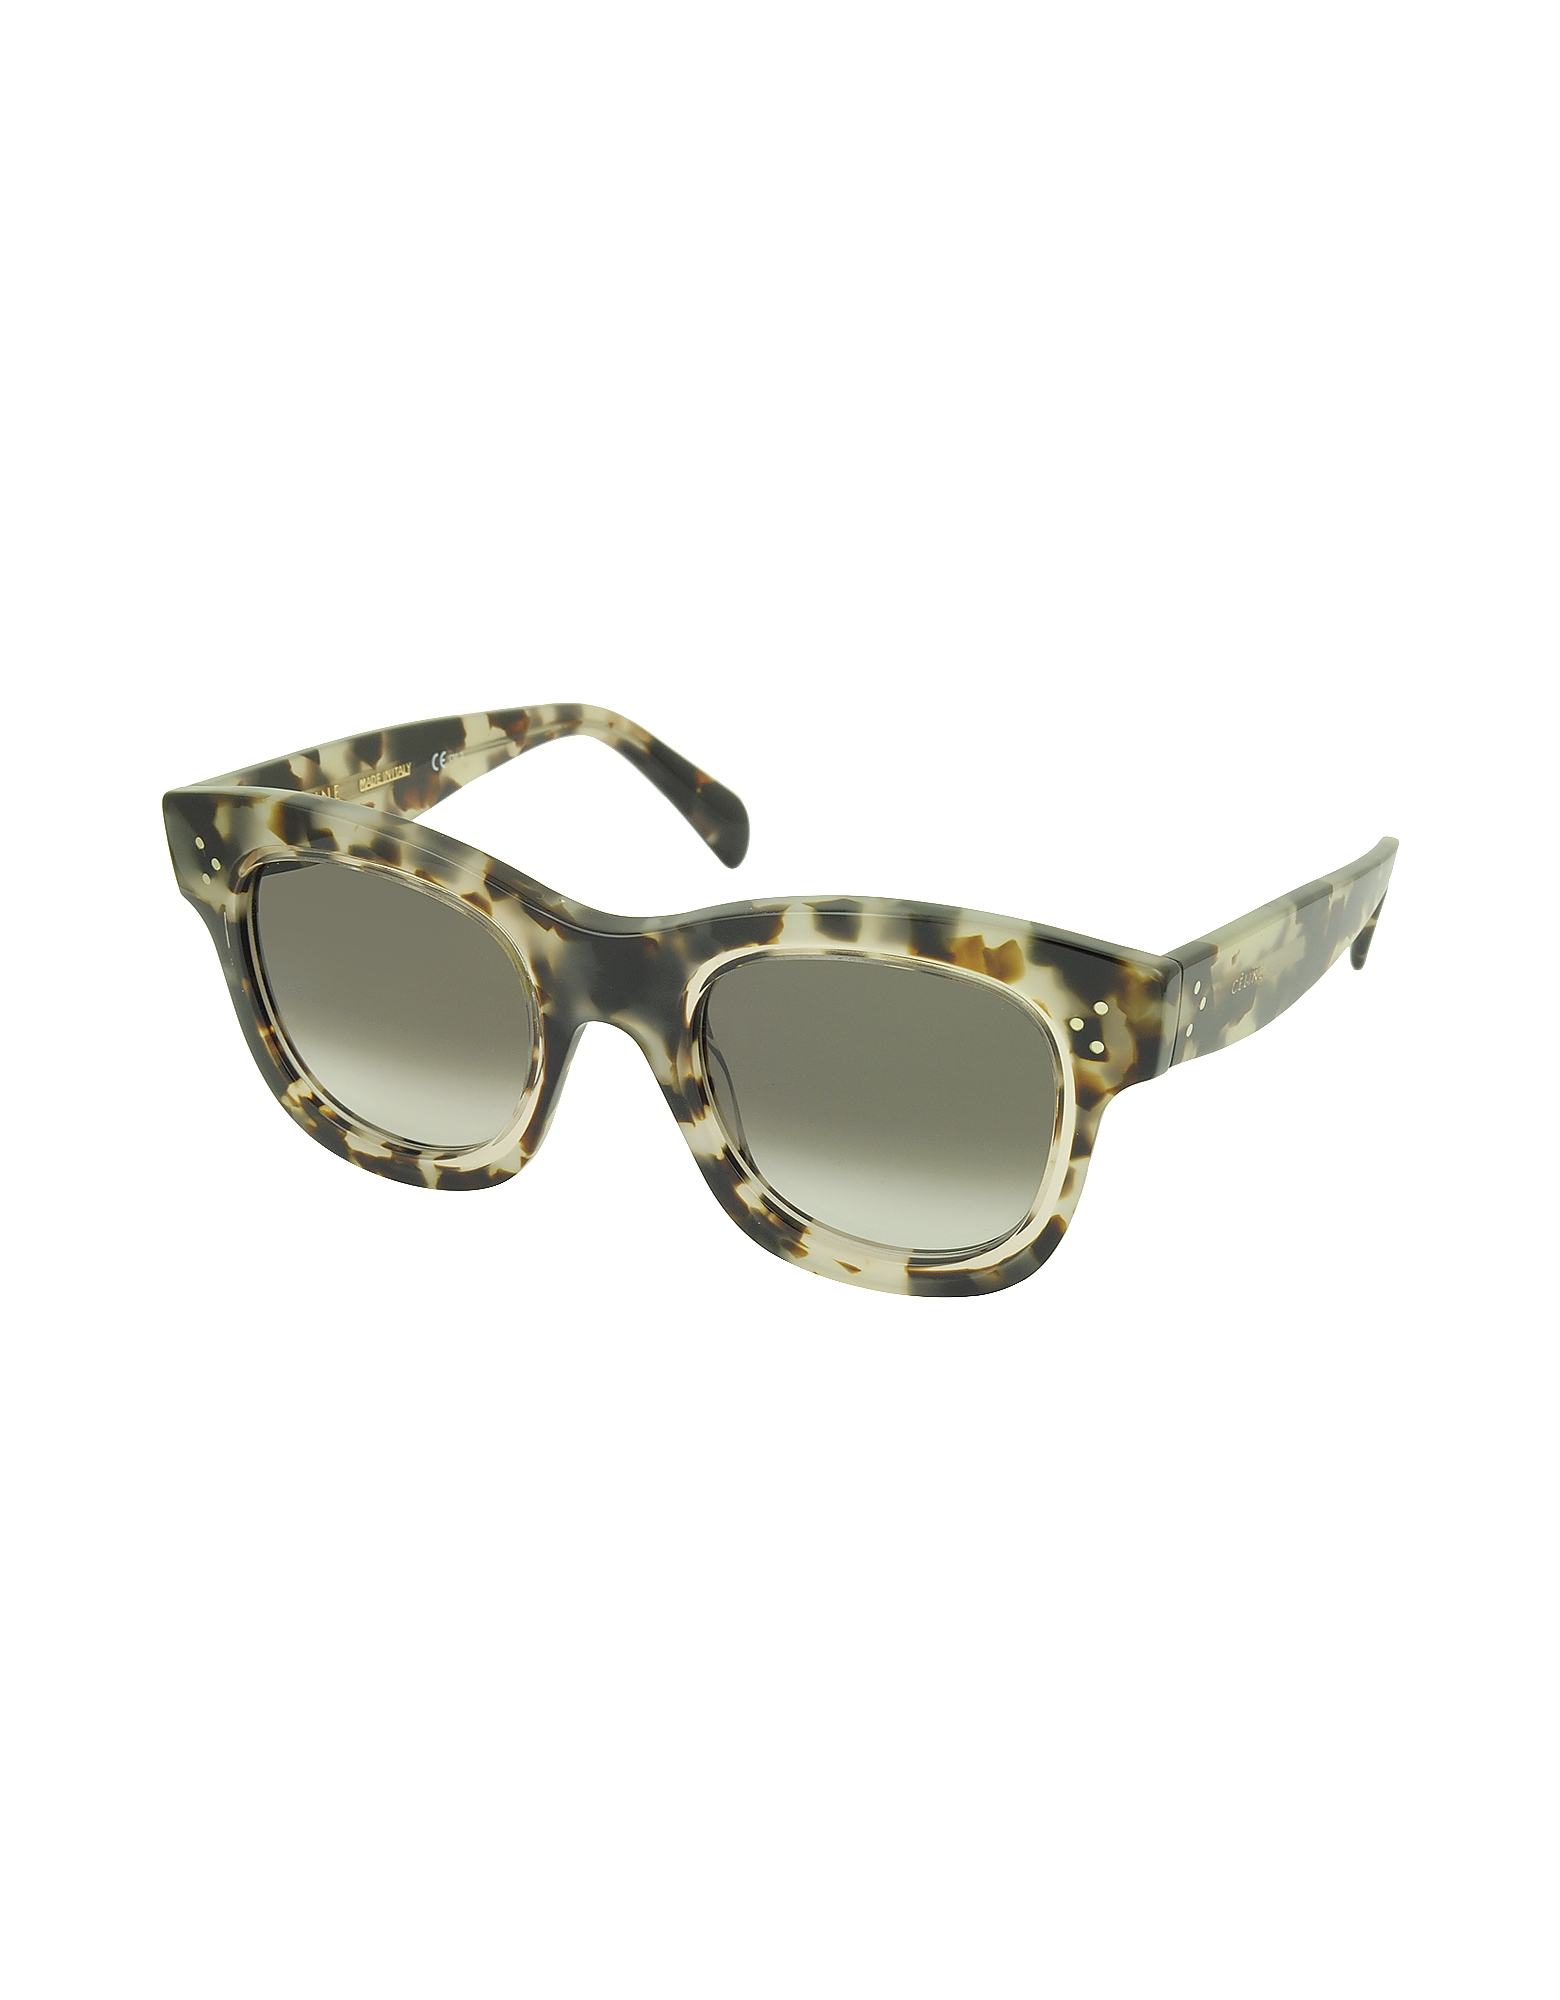 HELEN CL 41397/S T7MZ3 Havana Acetate Cat Eye Women's Sunglasses от Forzieri.com INT